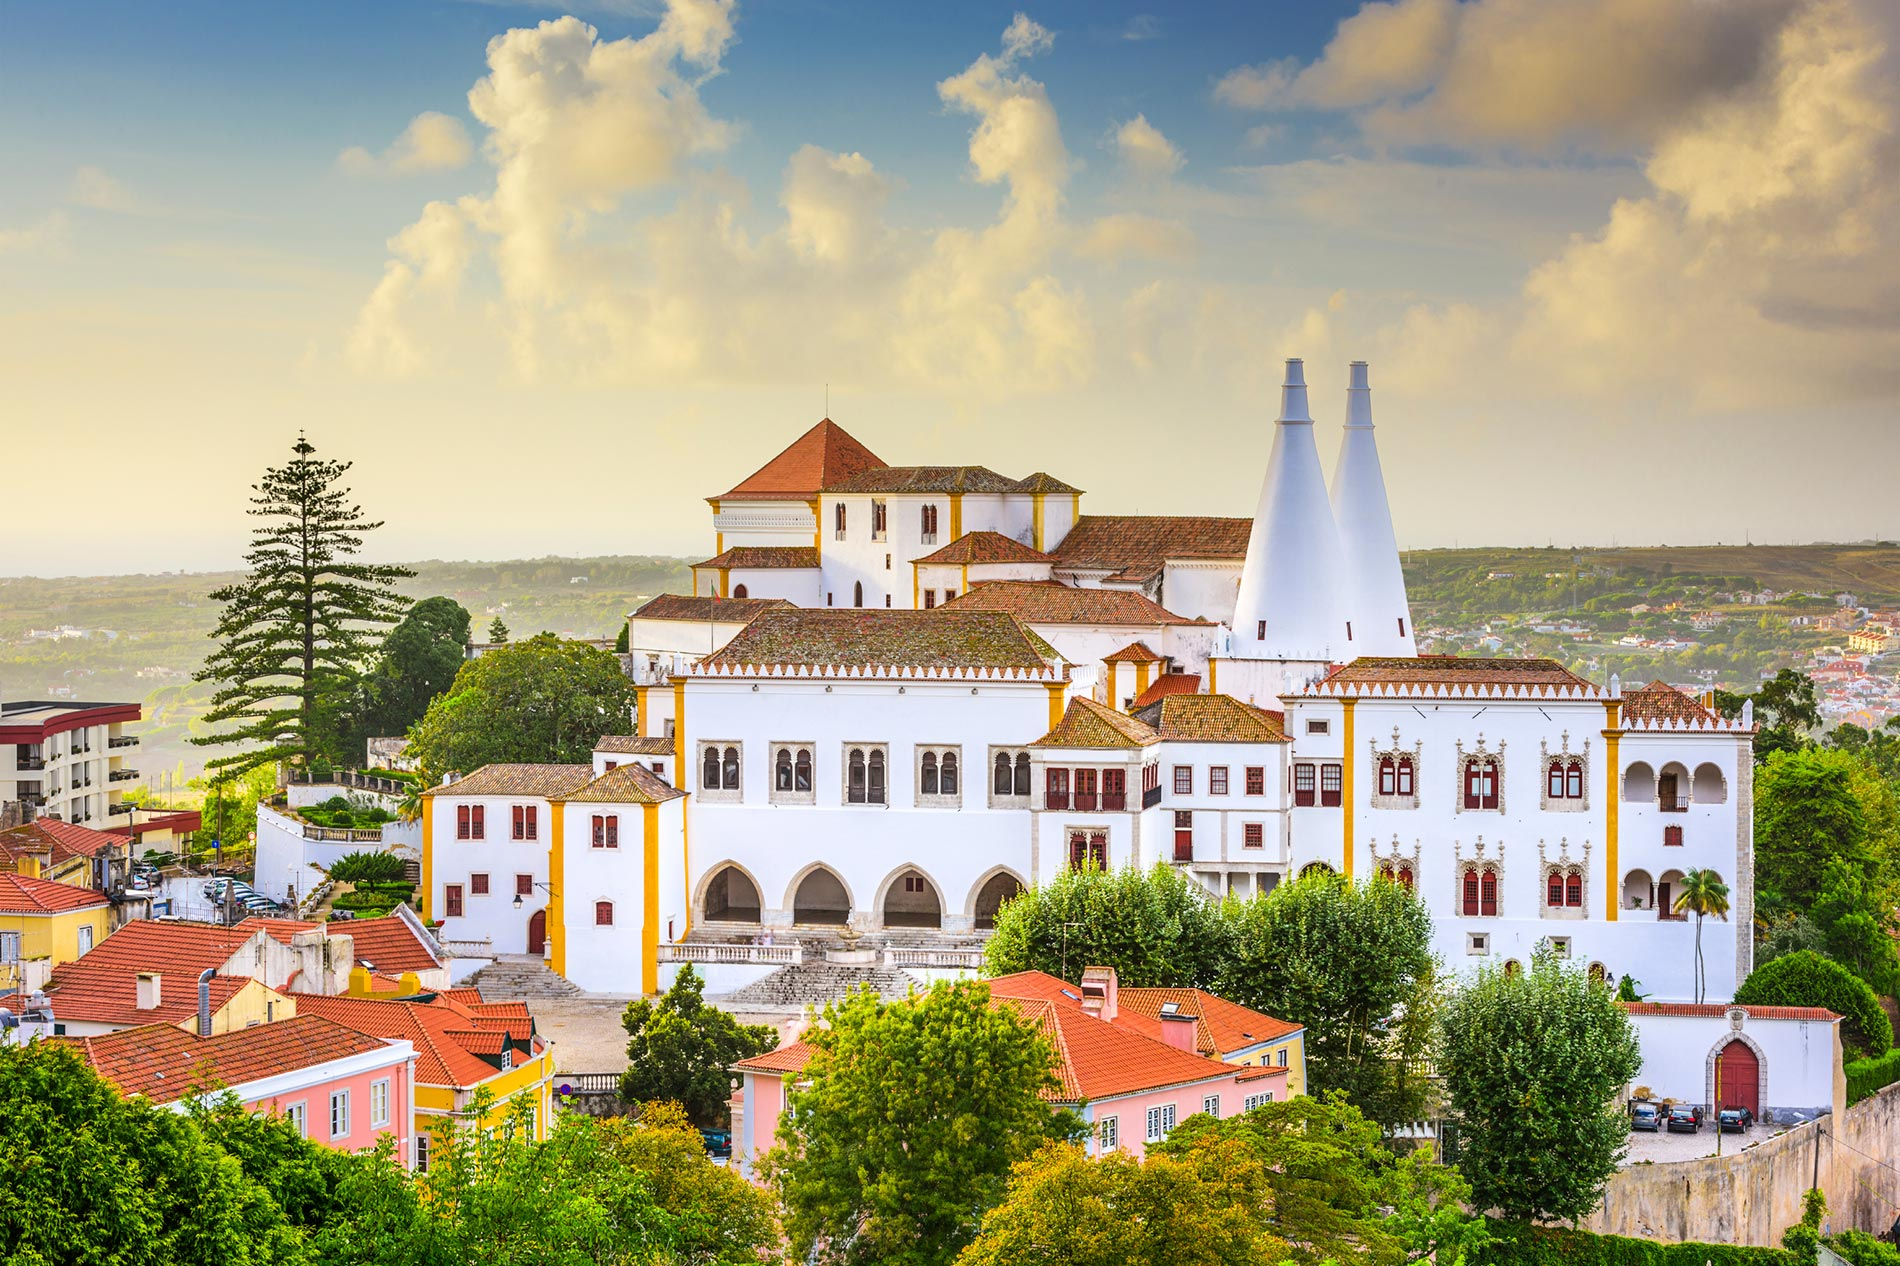 The oddly beautiful architecture of Sintra - Lisbon, Portugal